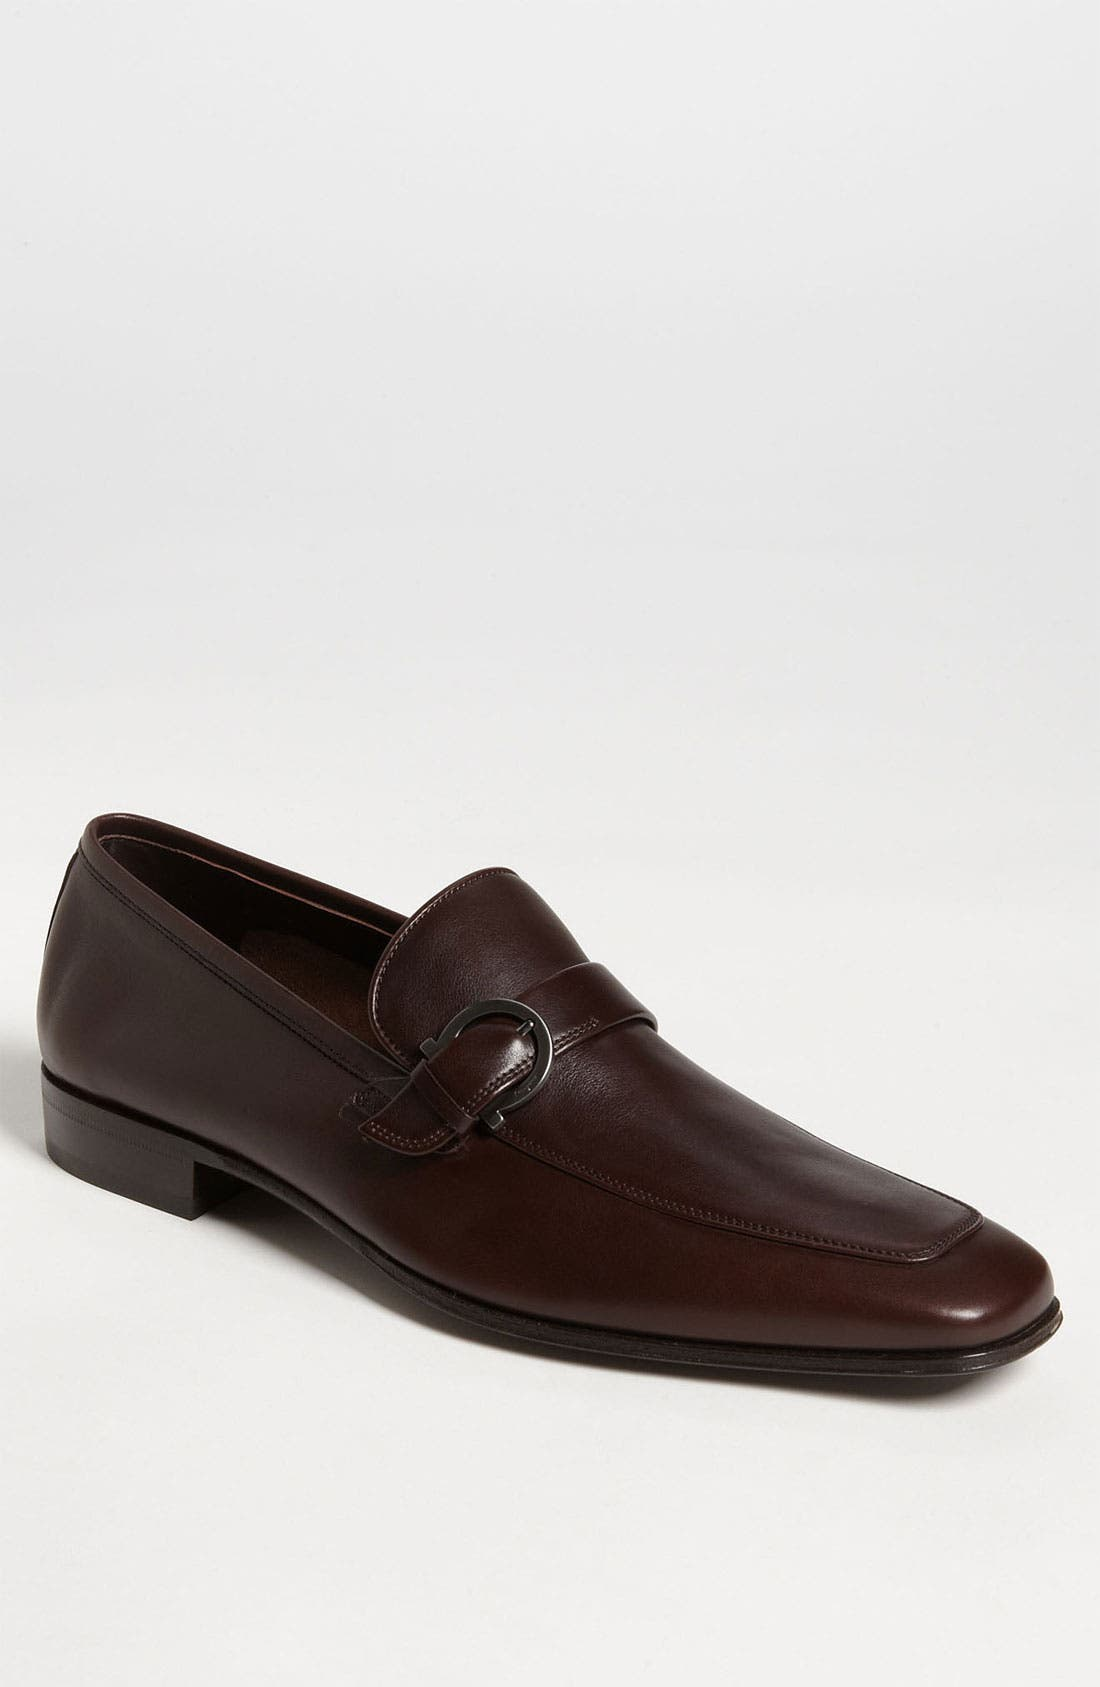 Main Image - Salvatore Ferragamo 'Ticino' Loafer